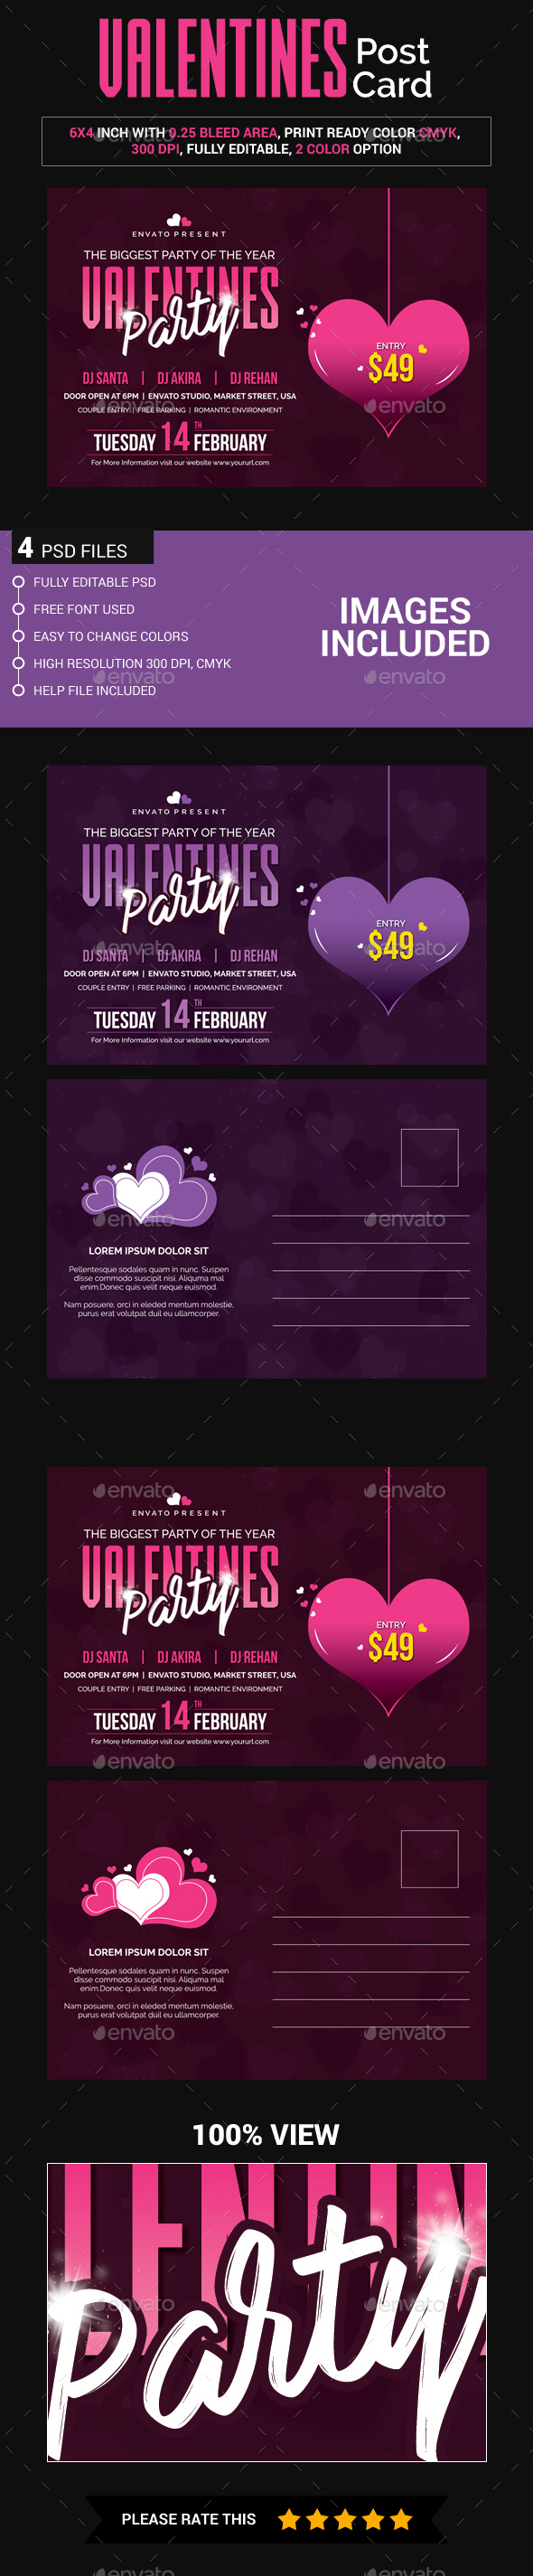 Valentines Post Card - Loyalty Cards Cards & Invites